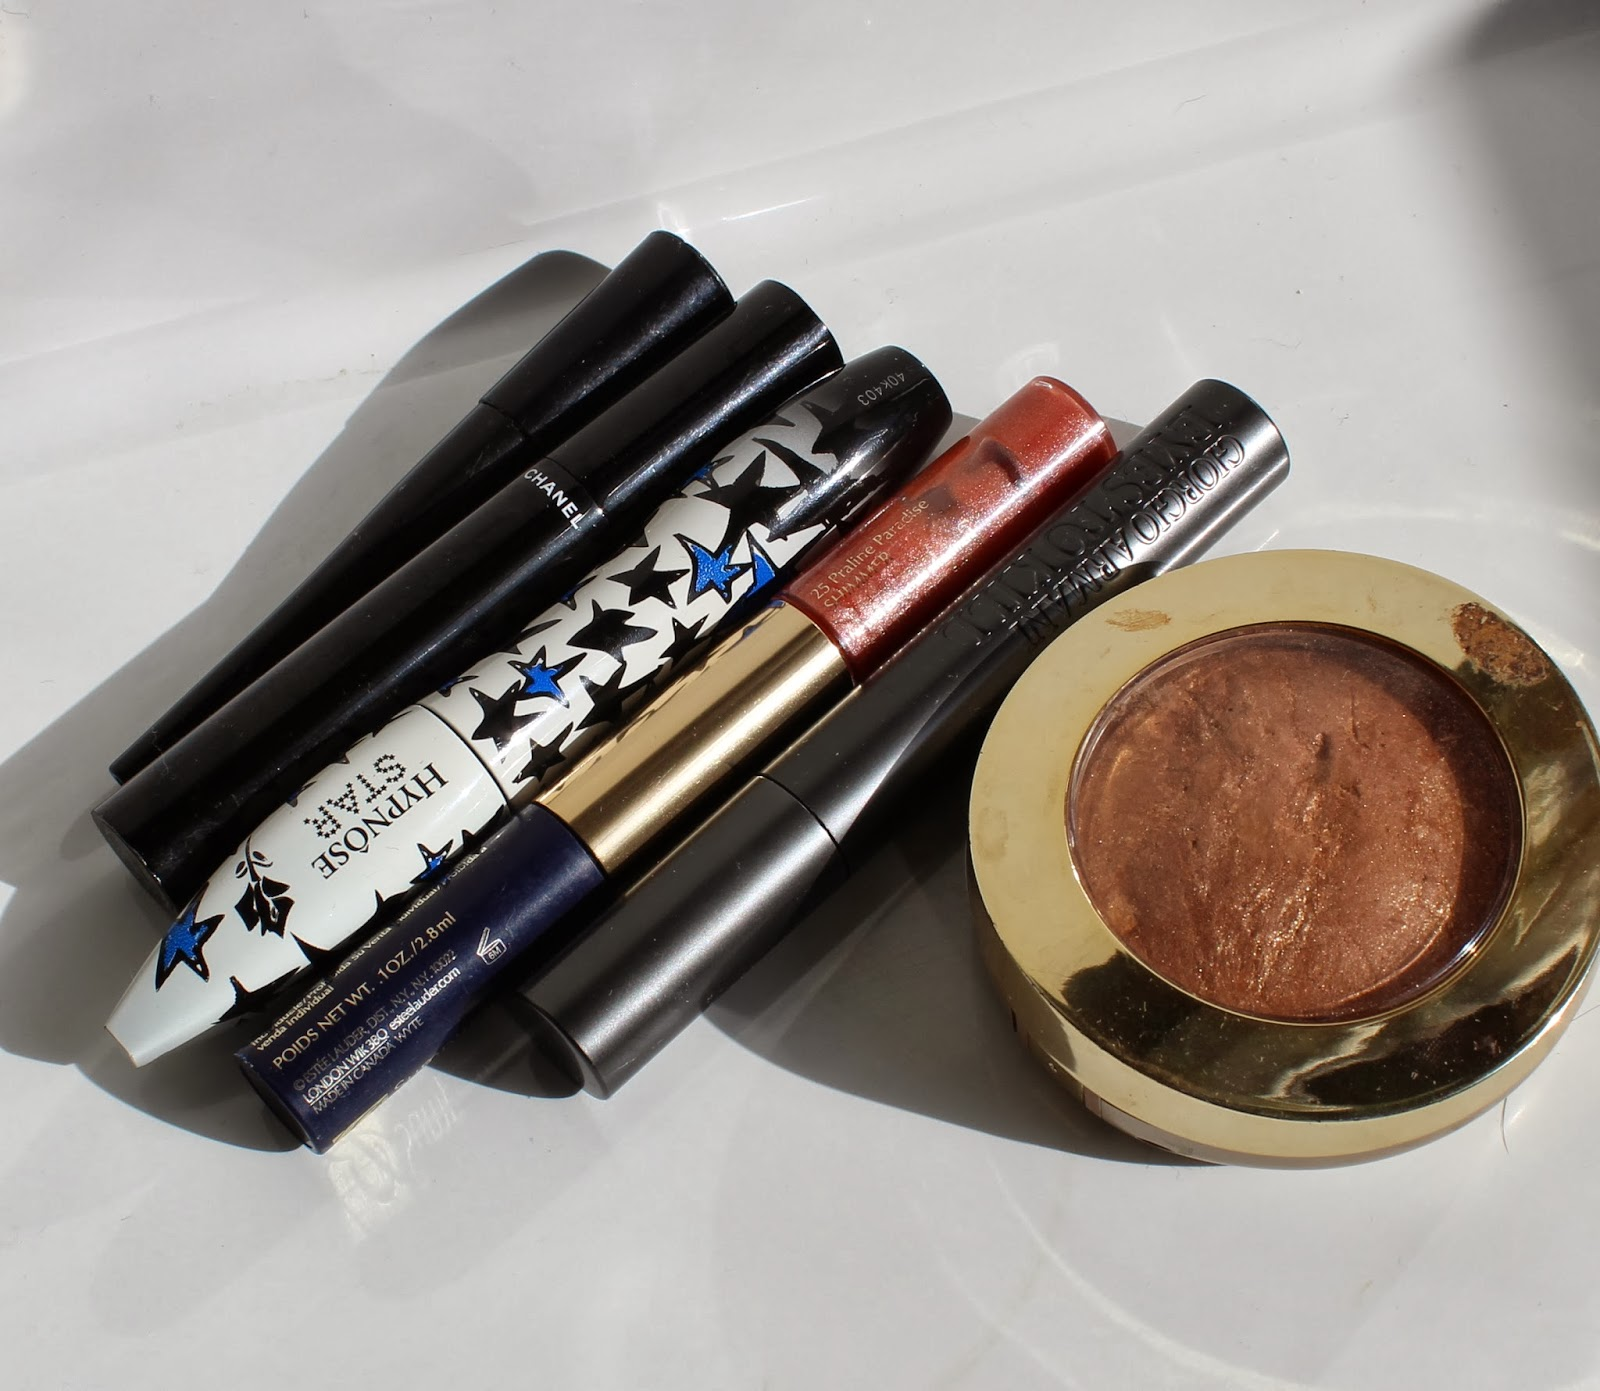 lancome hypnose chanel le volume milani baked bronzer elf armani eyes to kill